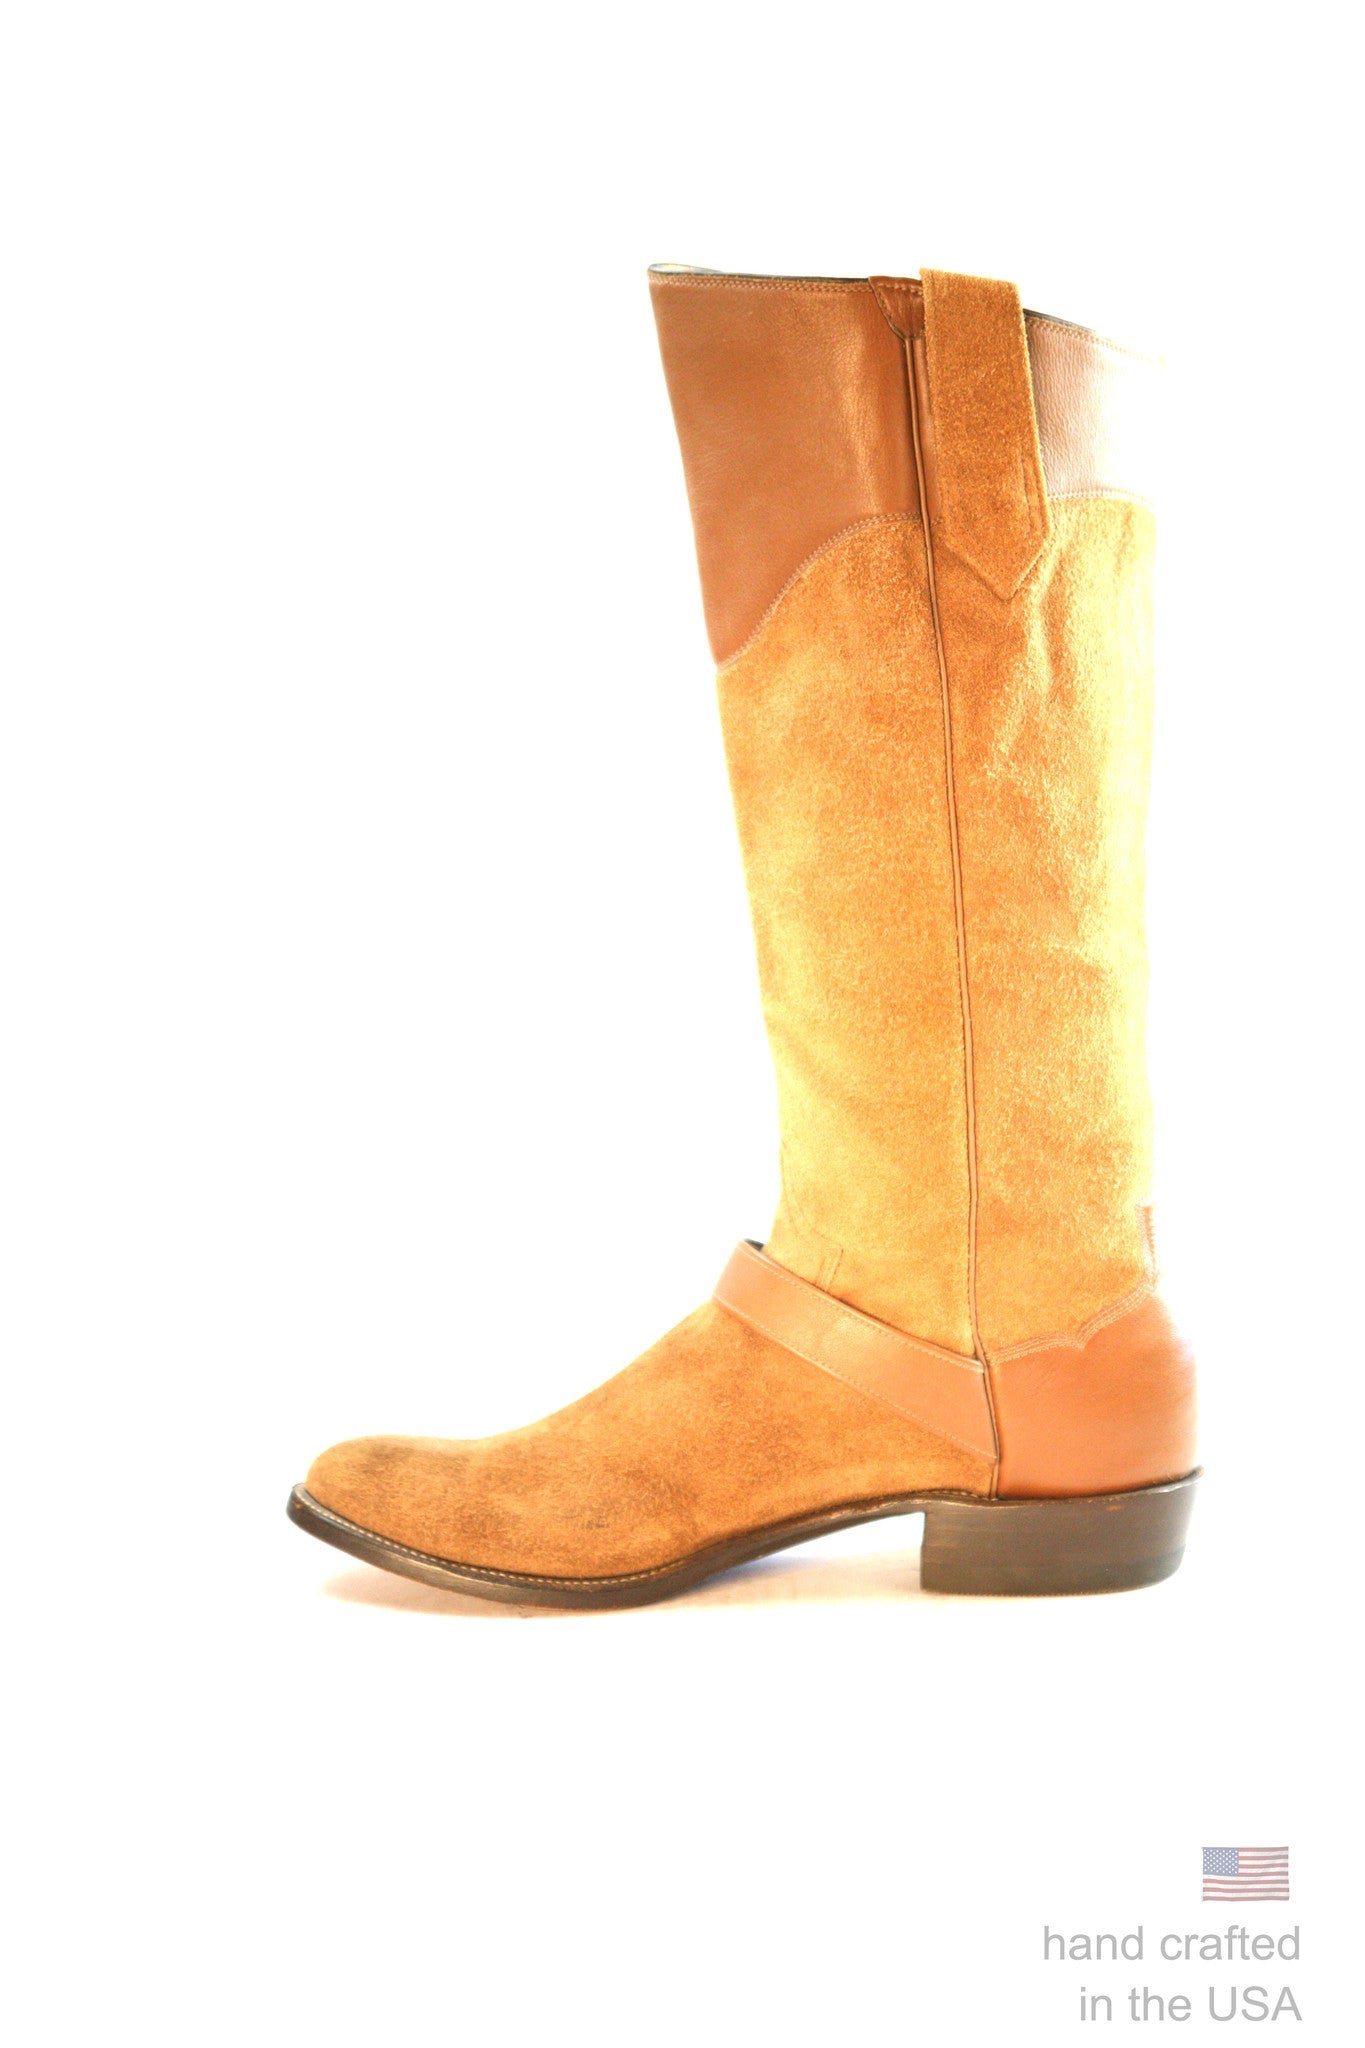 Singles: Boot 0200: Size 13.5 B